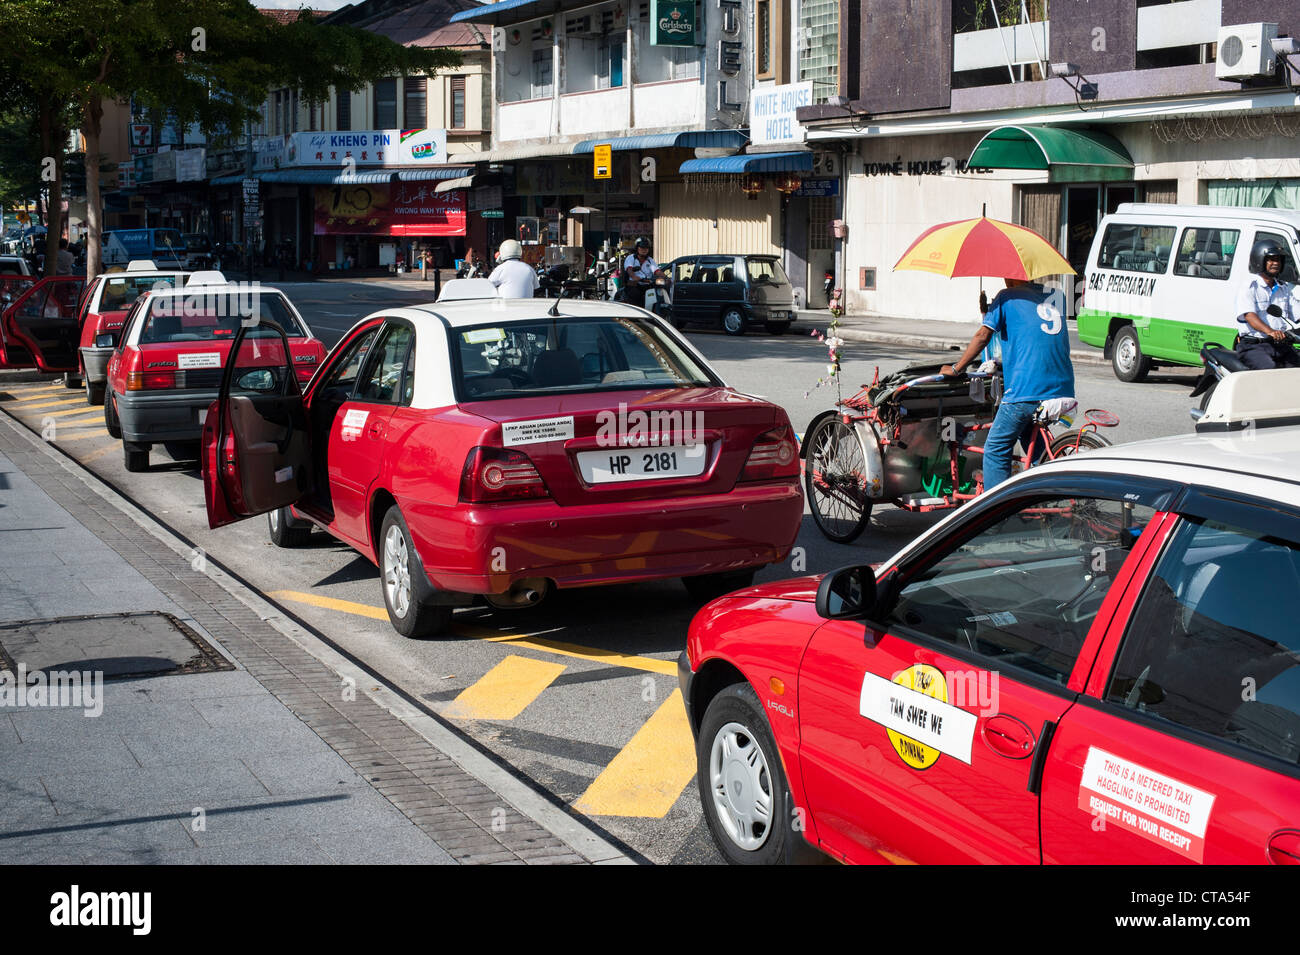 Malaysia, Penang, Georgetown Metered taxis in the streets of Penang. No Haggling. - Stock Image